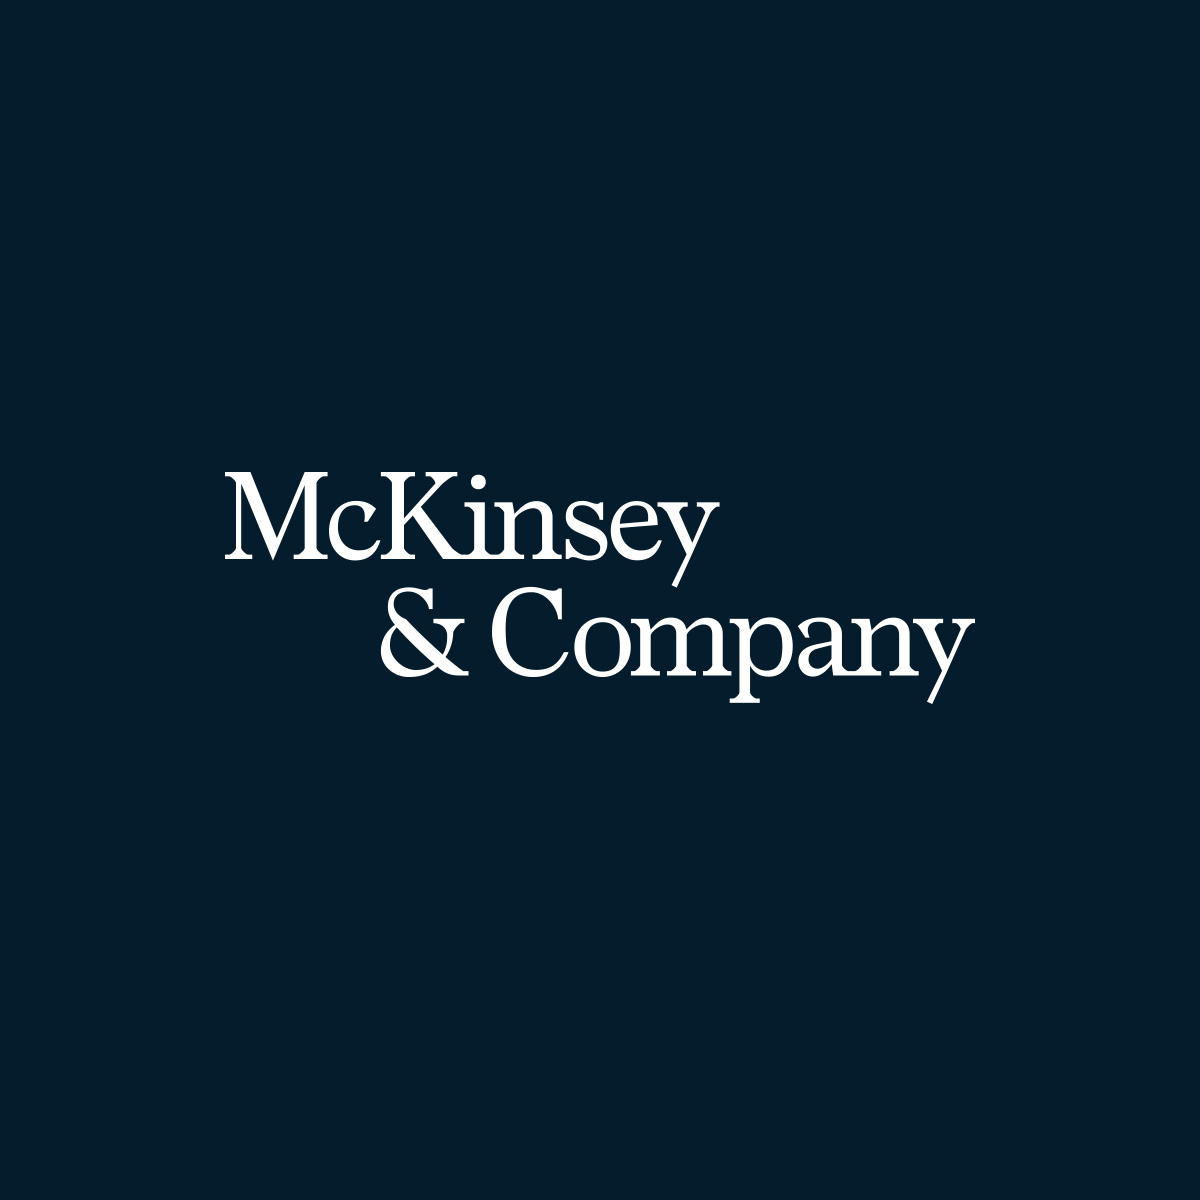 McKinsey & Company | Global management consulting